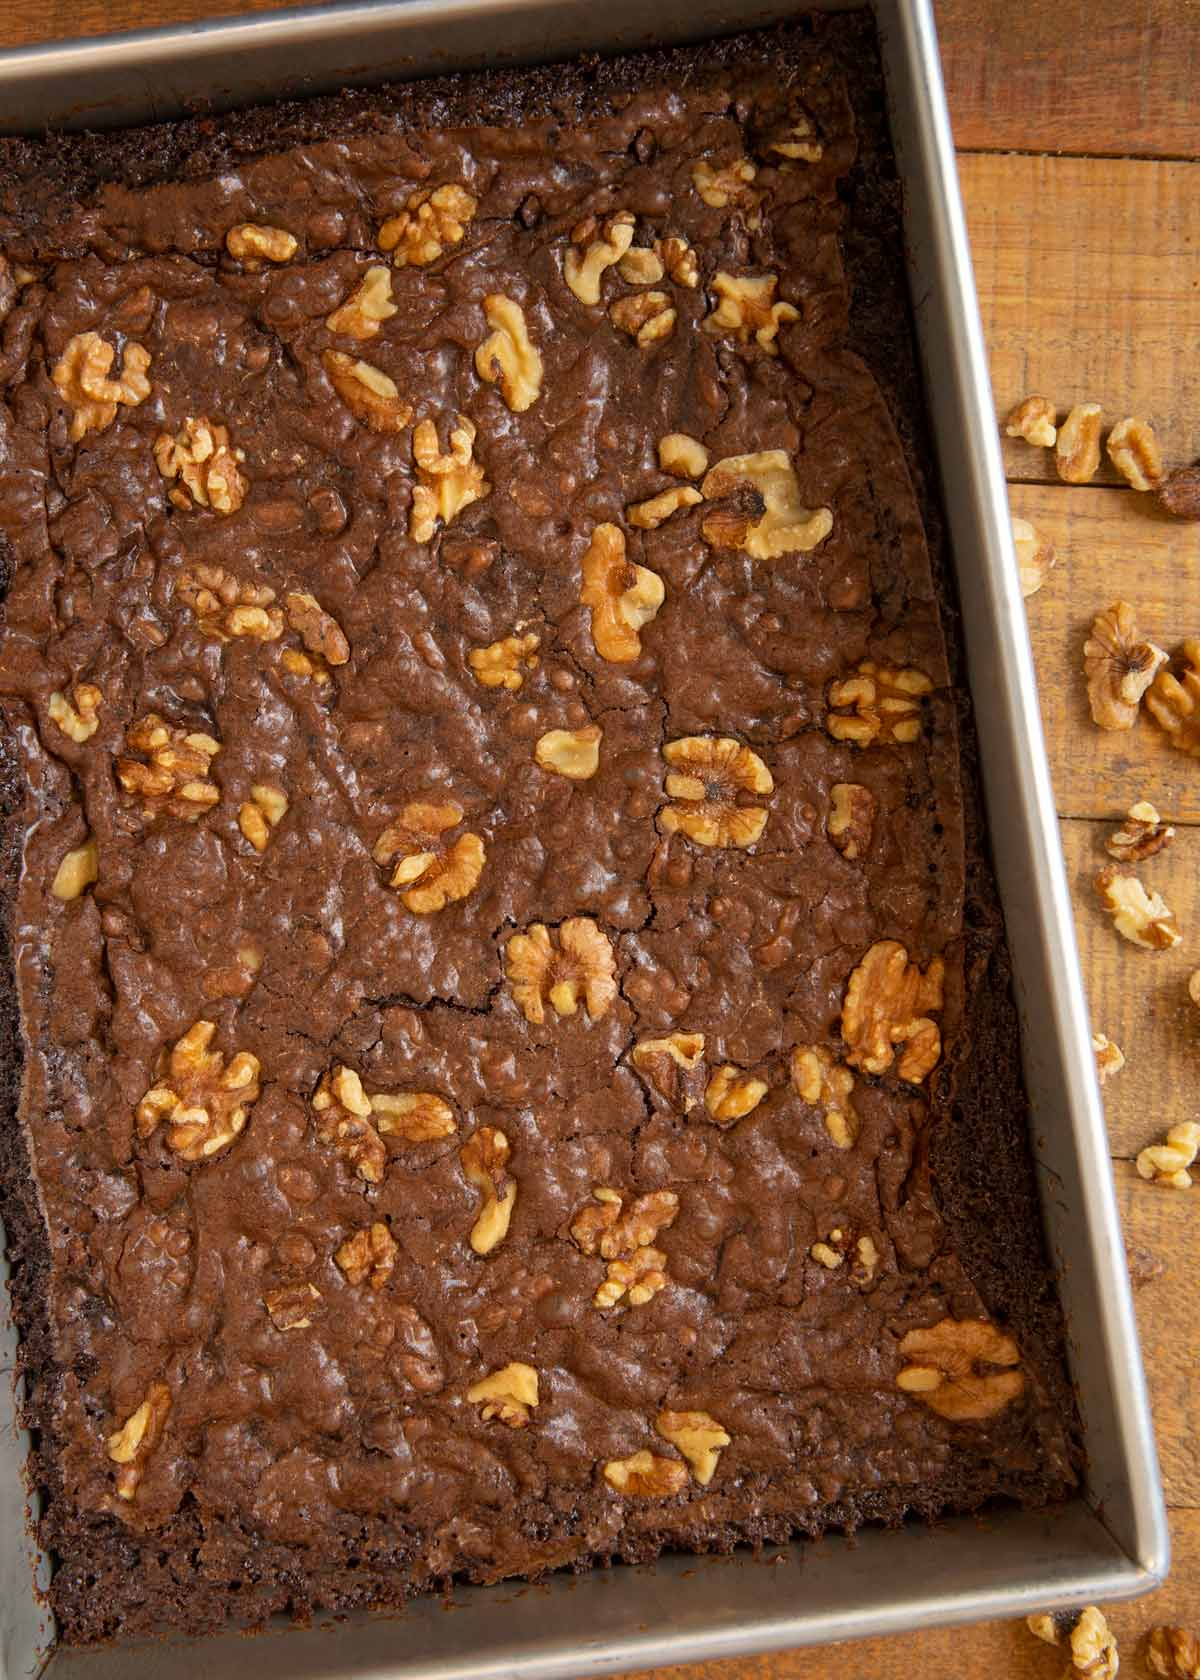 Walnut Brownies uncut in baking dish